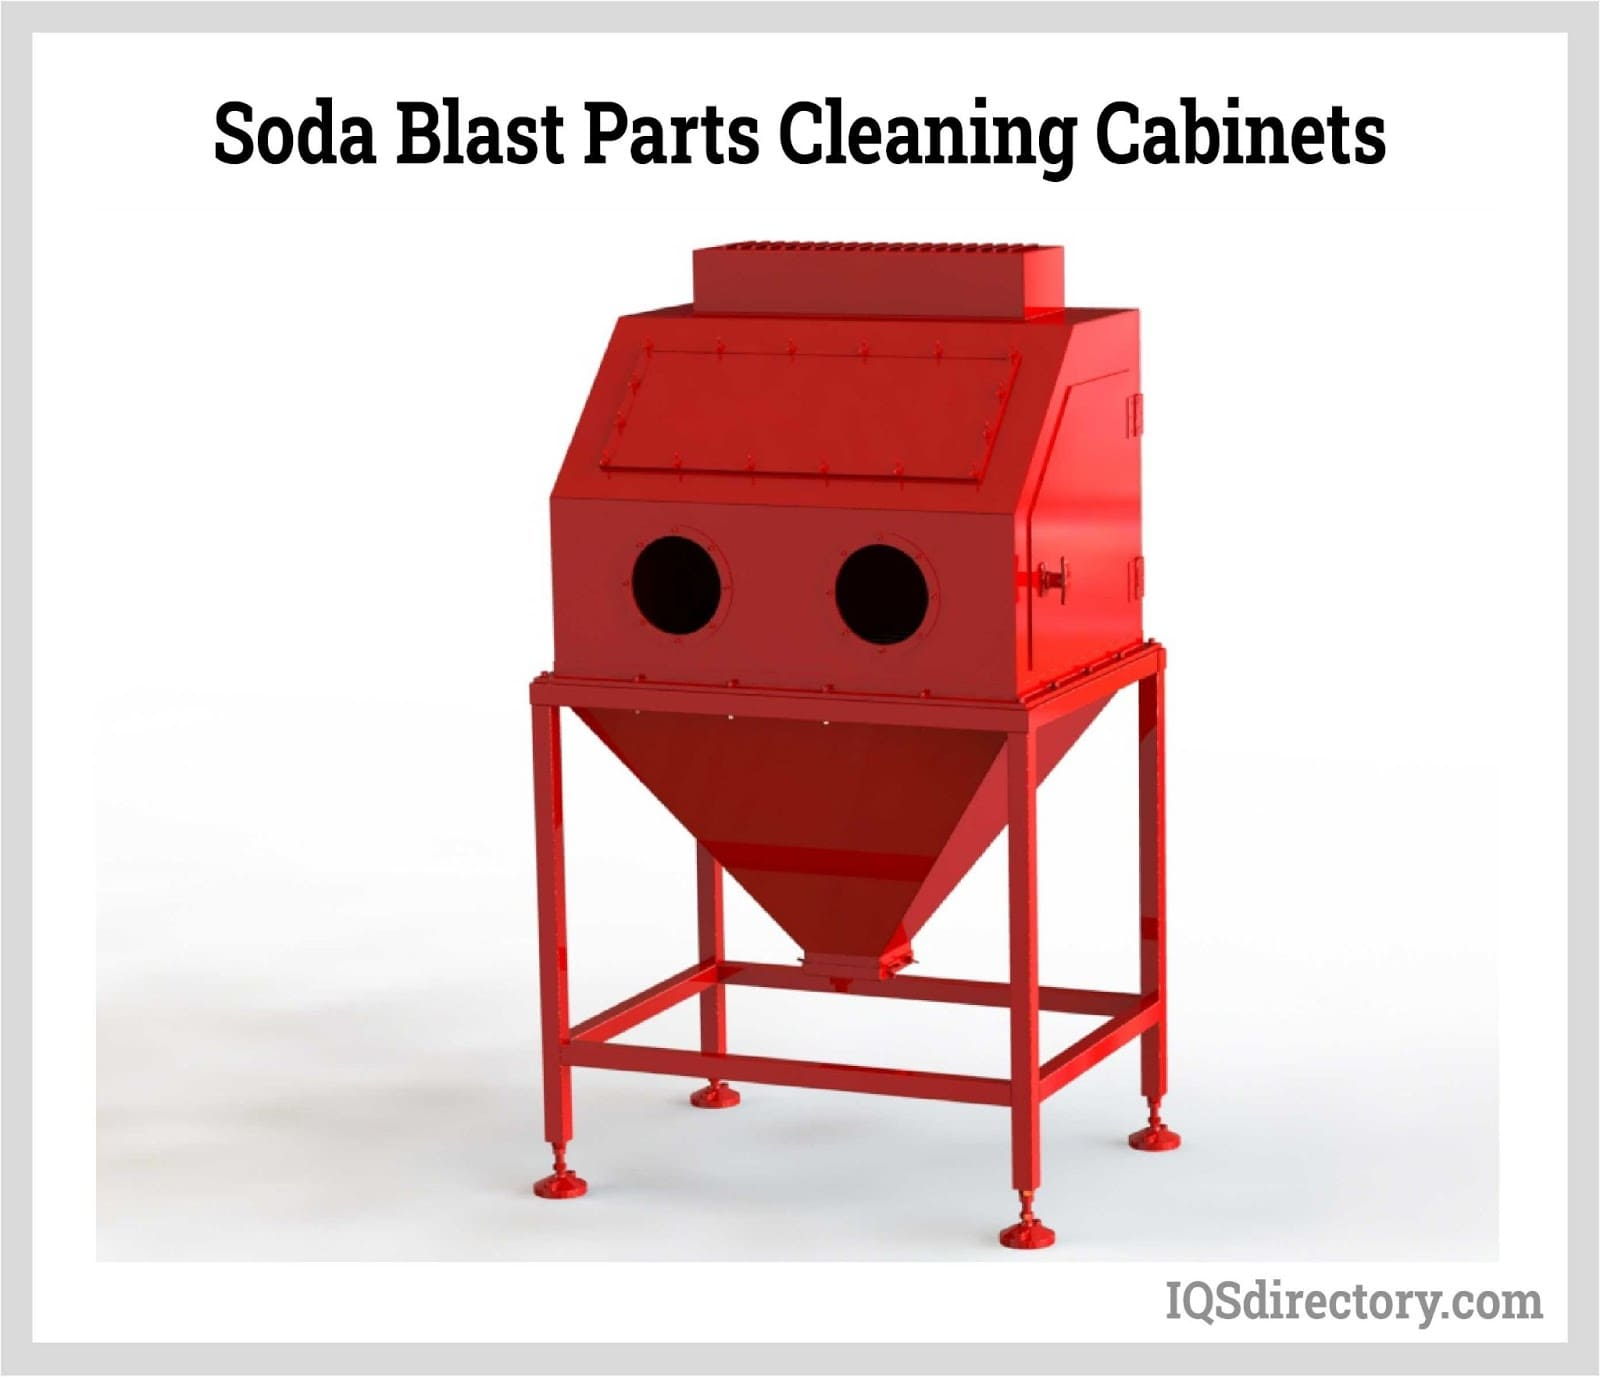 Soda Blast Parts Cleaning Cabinets